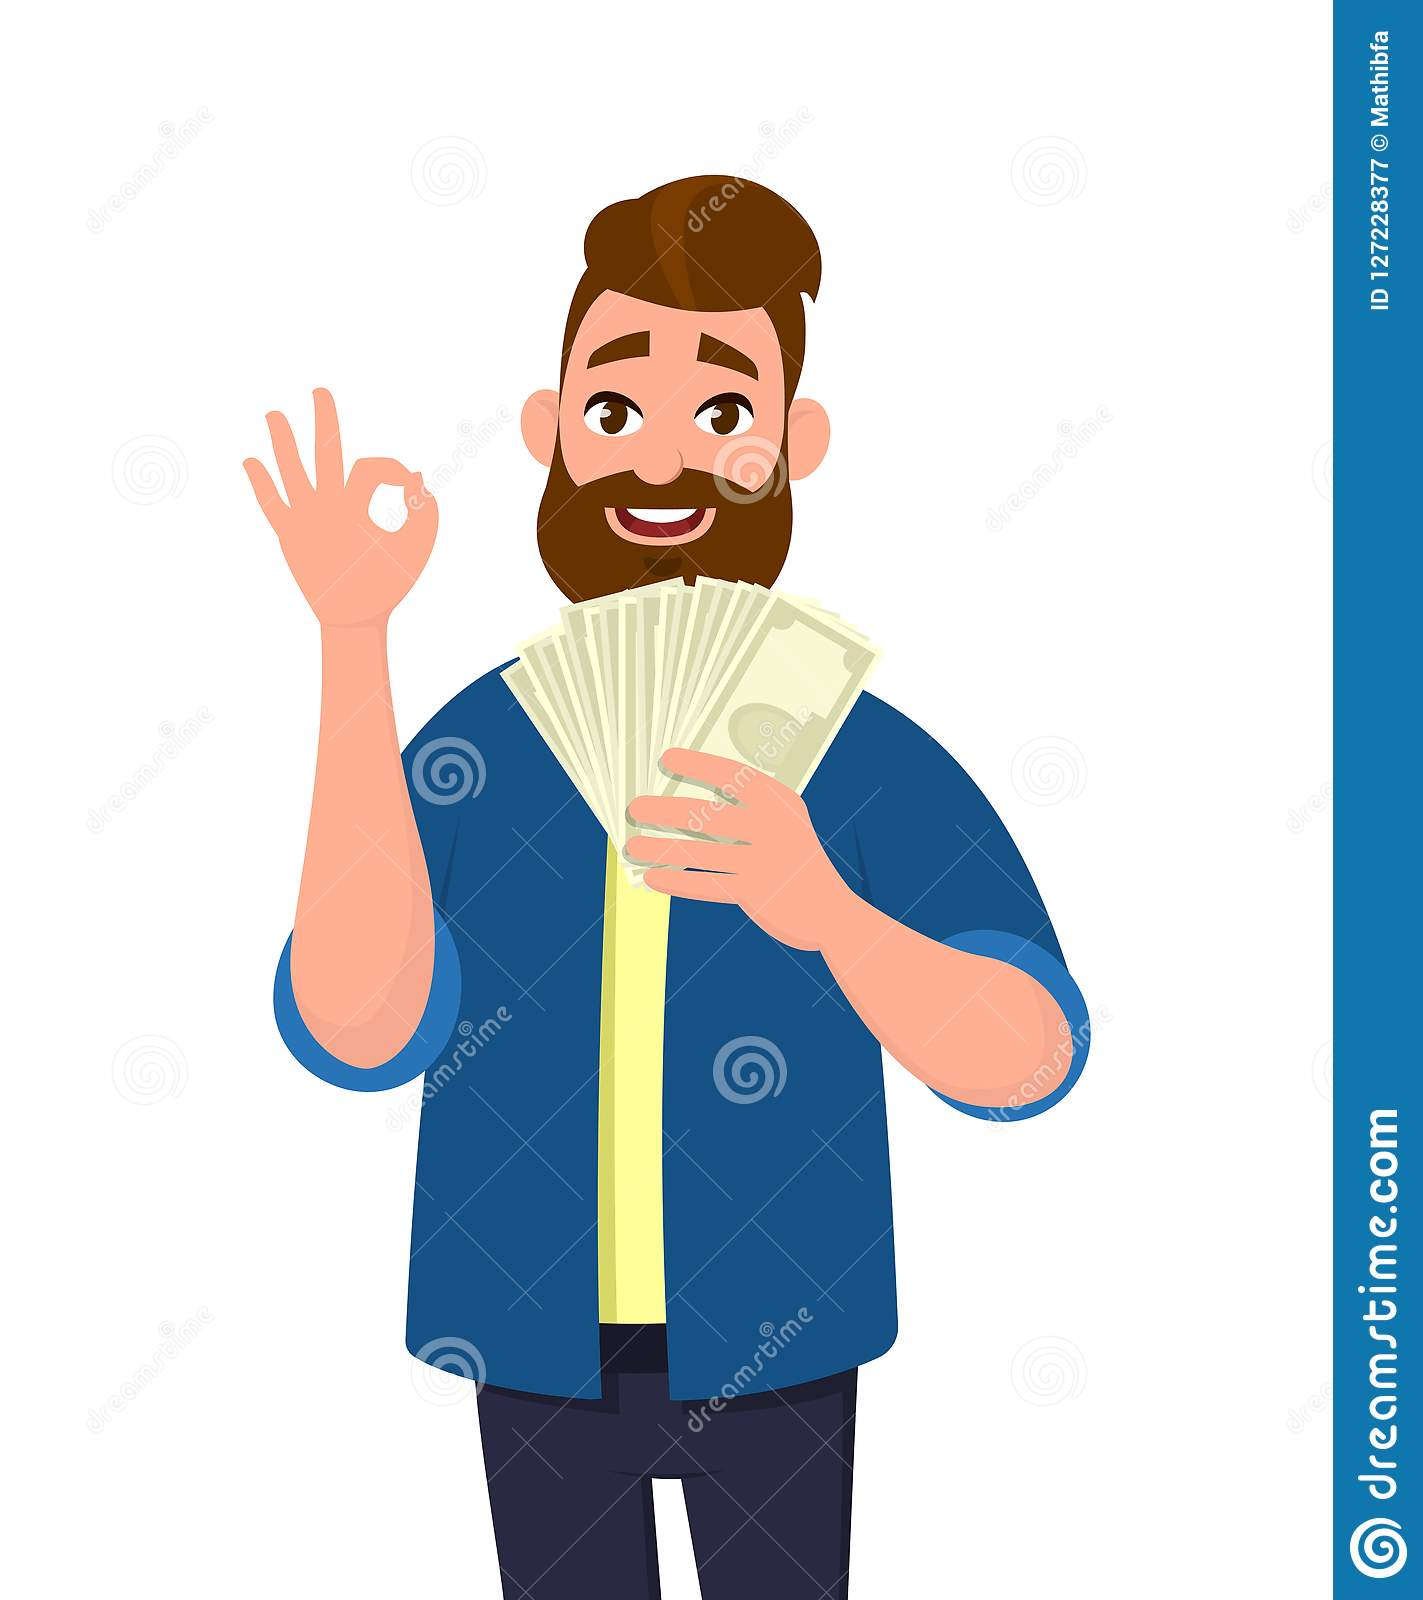 Happy young man holding cash/money/banknotes and gesture okay sign. Financial money concept. Human emotion concept illustration.